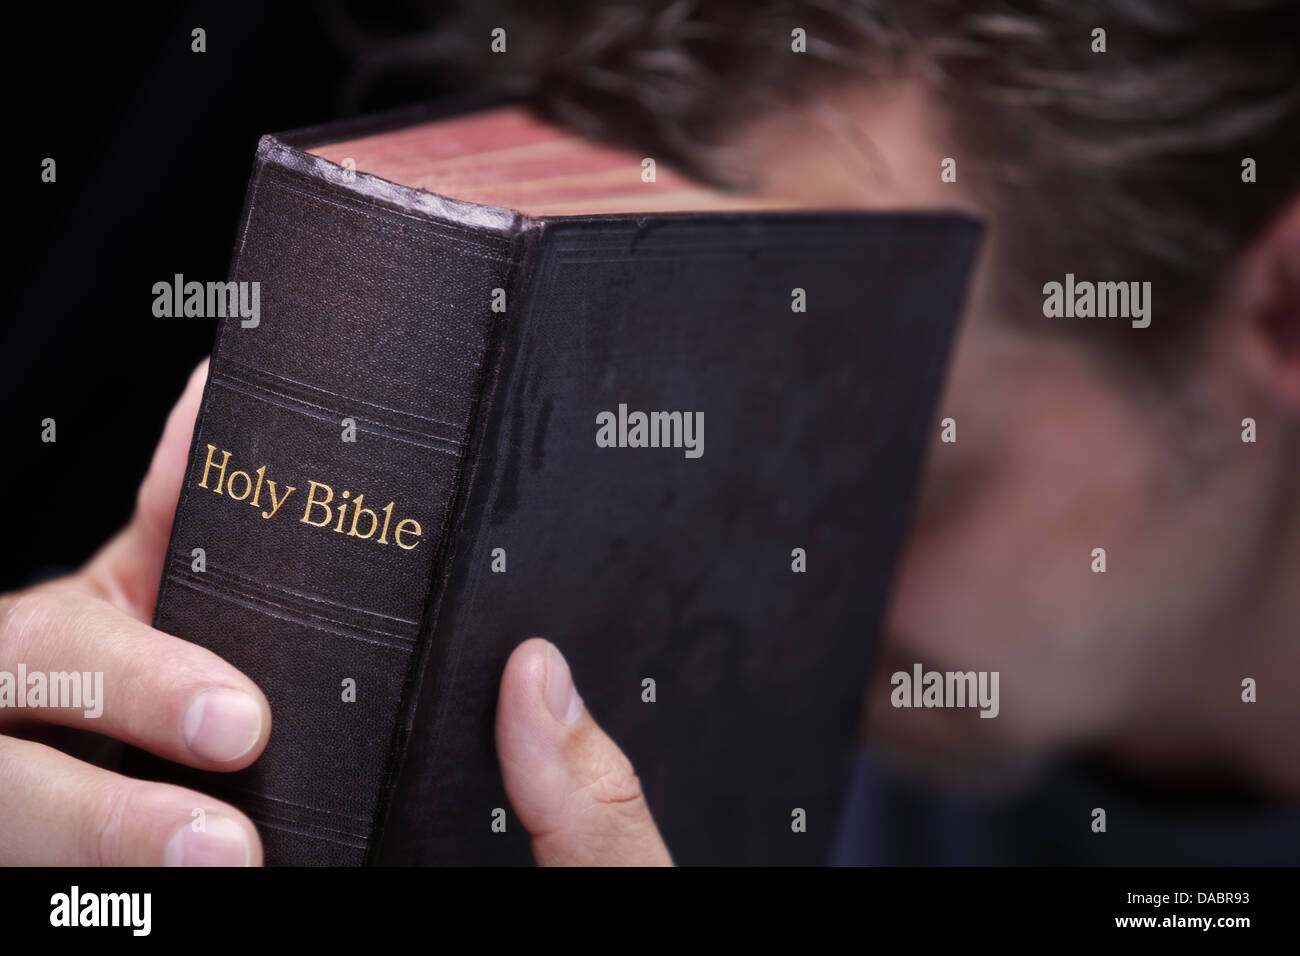 Hands clasped in prayer around Holy Bible - Stock Image